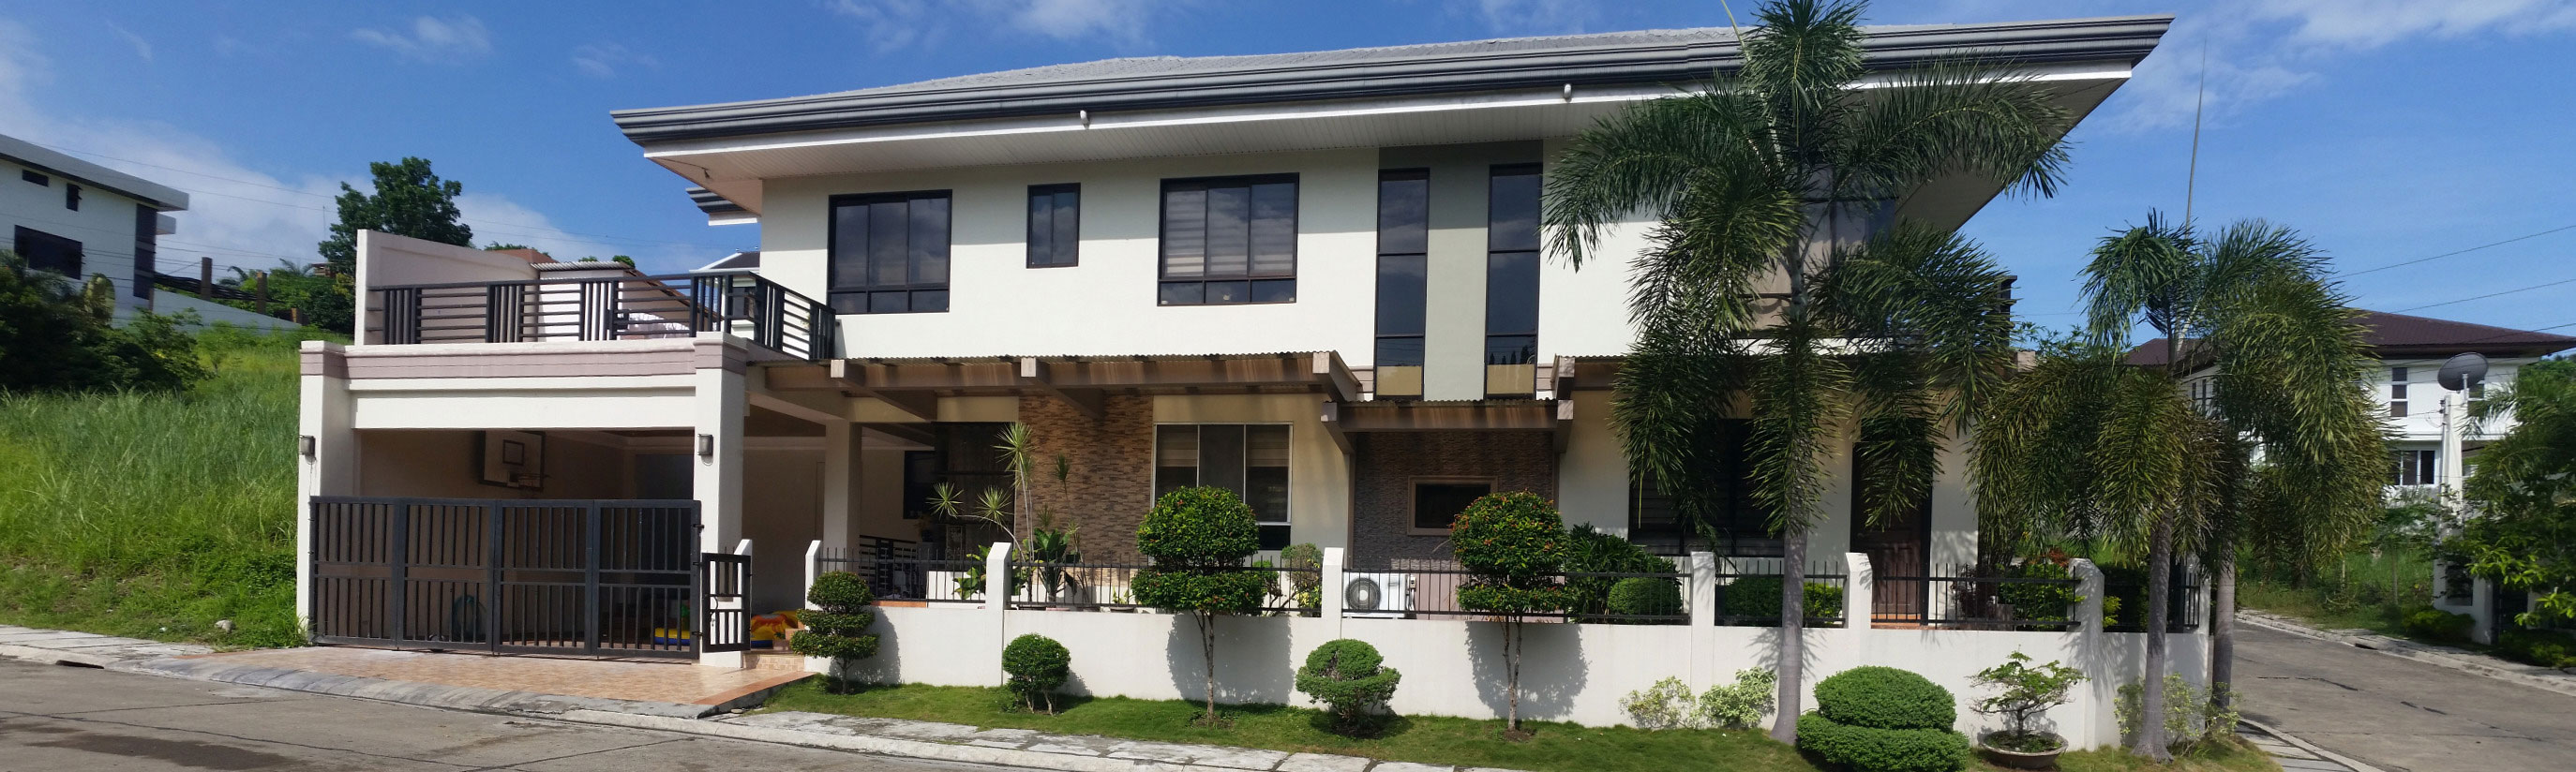 2 storey residential house and lot for sale in monteritz for 2 storey house for sale